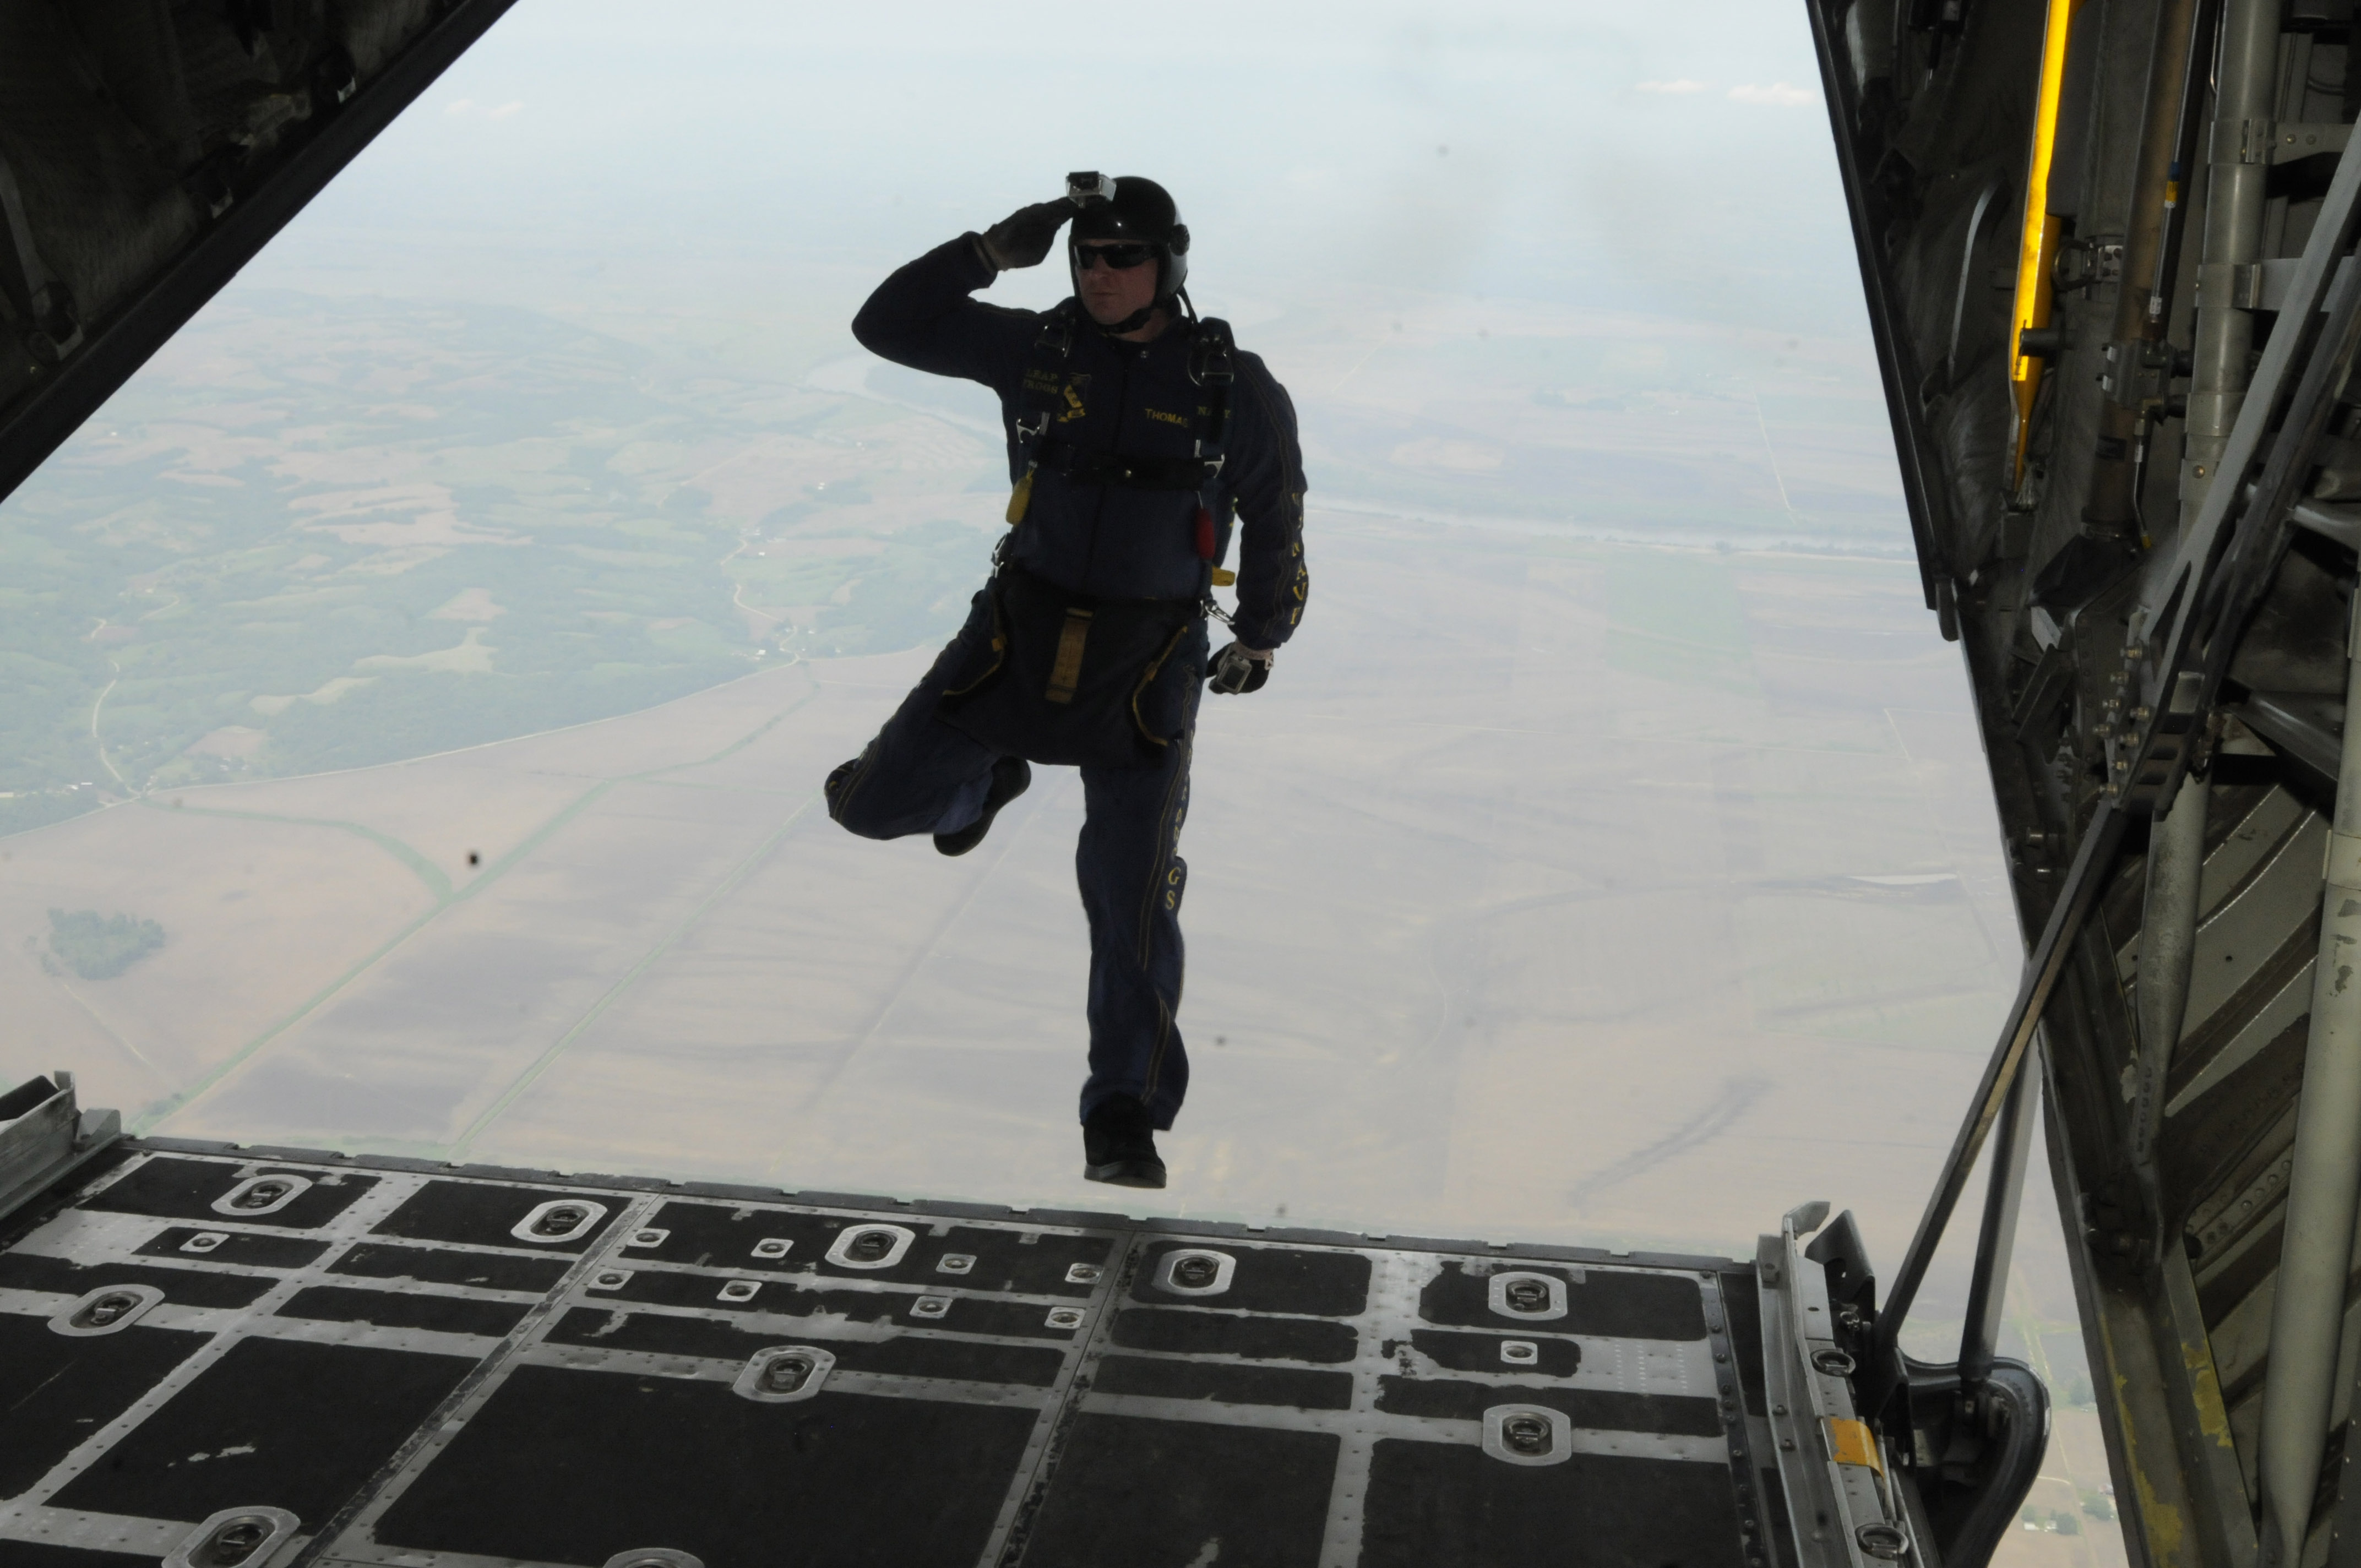 ST. JOSEPH, Mo. (May 4, 2012) Aircrew Survival Equipmentman 1st Class Thomas Kinn, assigned to the U.S. Navy parachute demonstration team, the Leap Frogs, salutes as he steps off the ramp of a C-130 Hercules aircraft assigned to the 139th Airlift Wing of Missouri Air National Guard during the Sound of Speed Air Show rehearsal at Rosecrans Memorial Airport. The Leap Frogs are based in San Diego and perform aerial parachute demonstrations in support of Naval Special Warfare and Navy recruiting. (U.S. Navy photo by Mass Communication Specialist 1st Class Michelle Turner/Released)